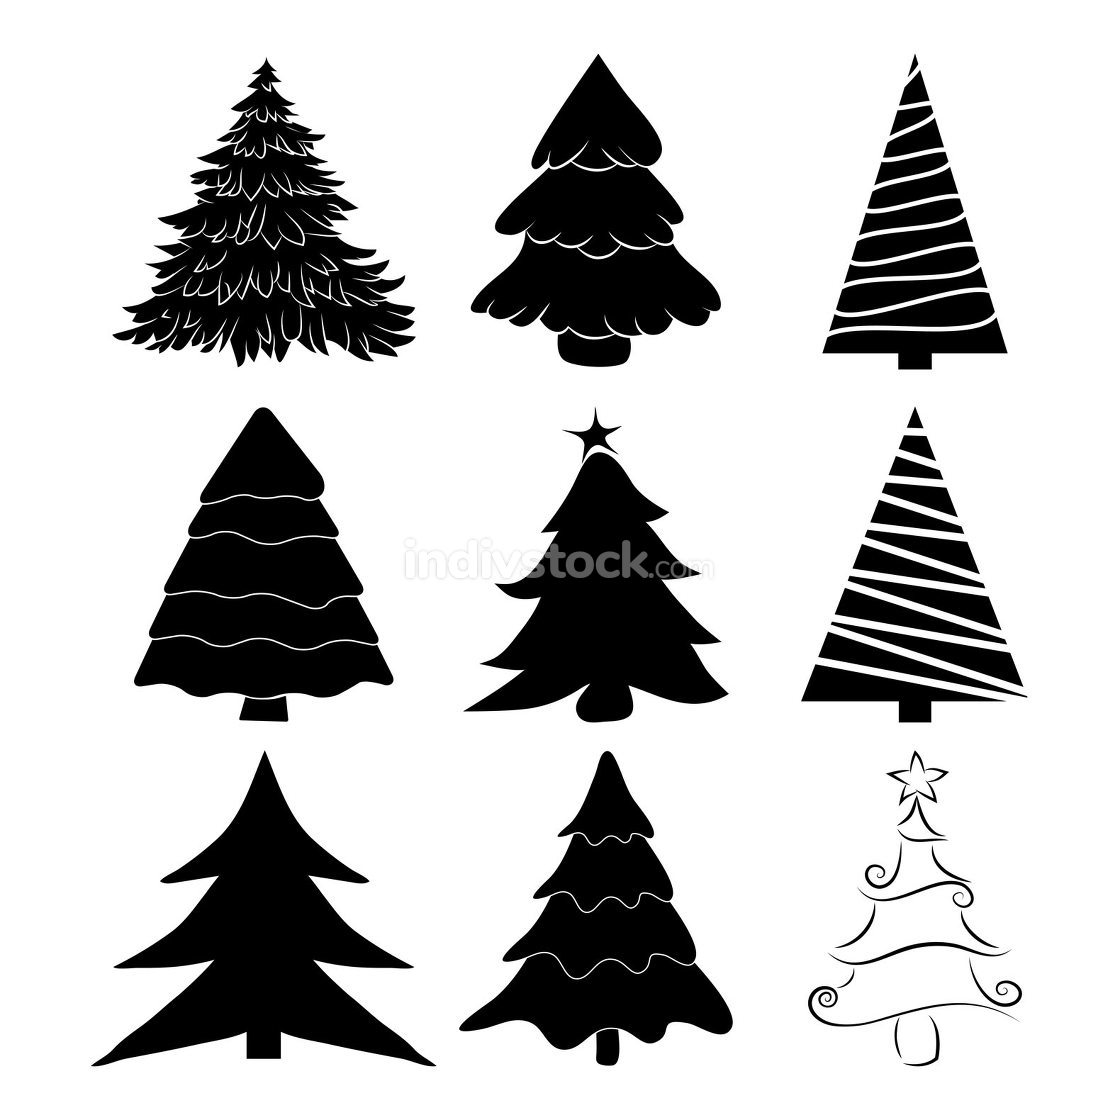 Christmas tree silhouettes set. Black pines icon for xmas card o